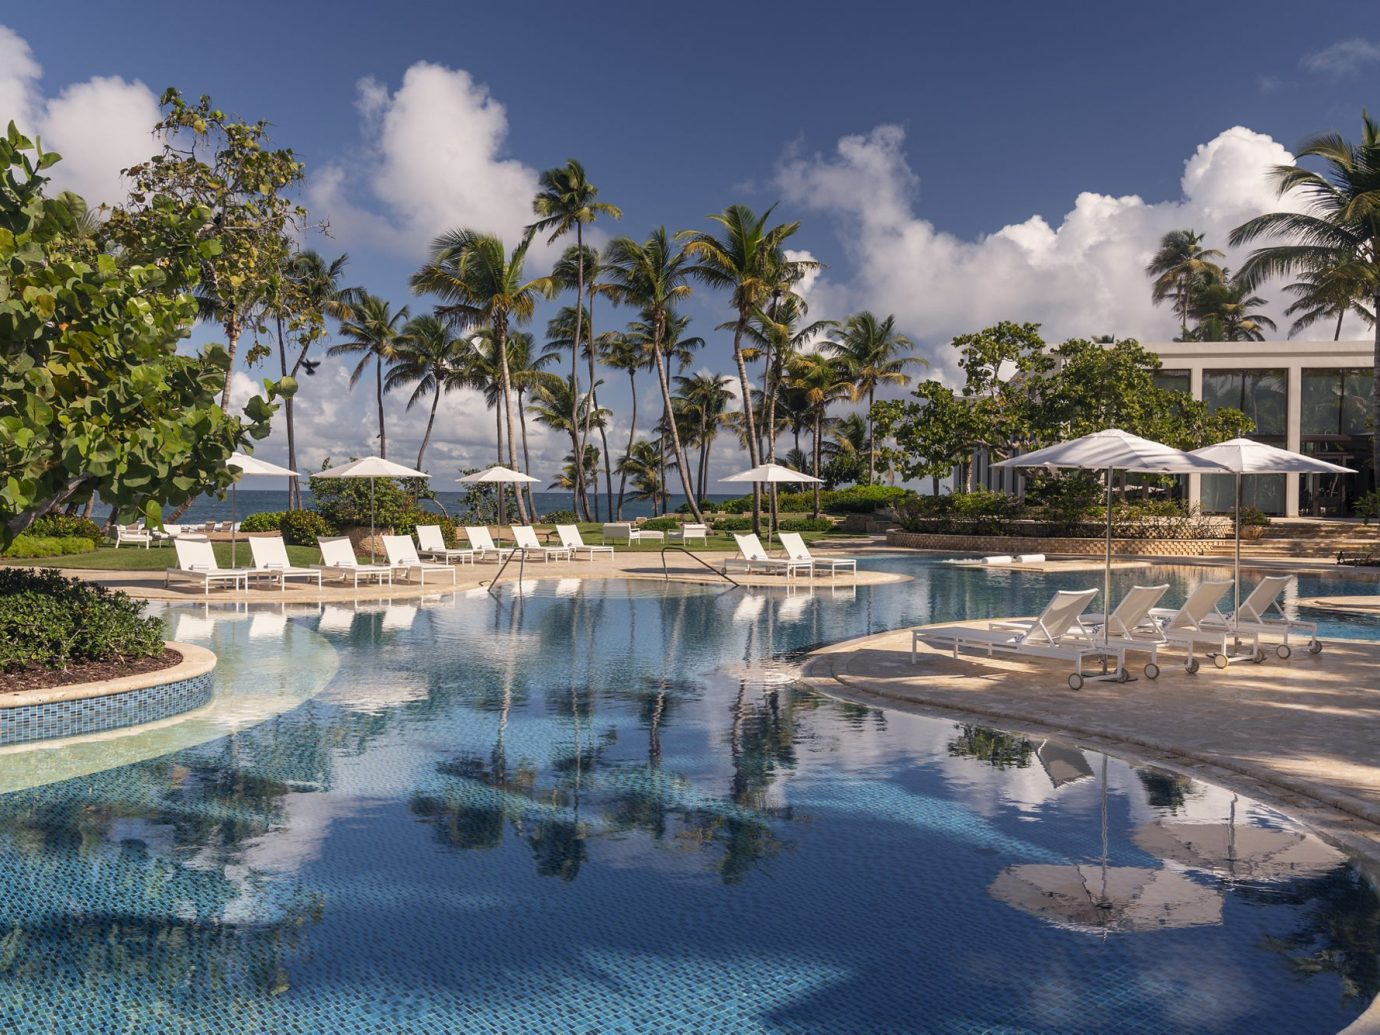 Pool at Dorado Beach